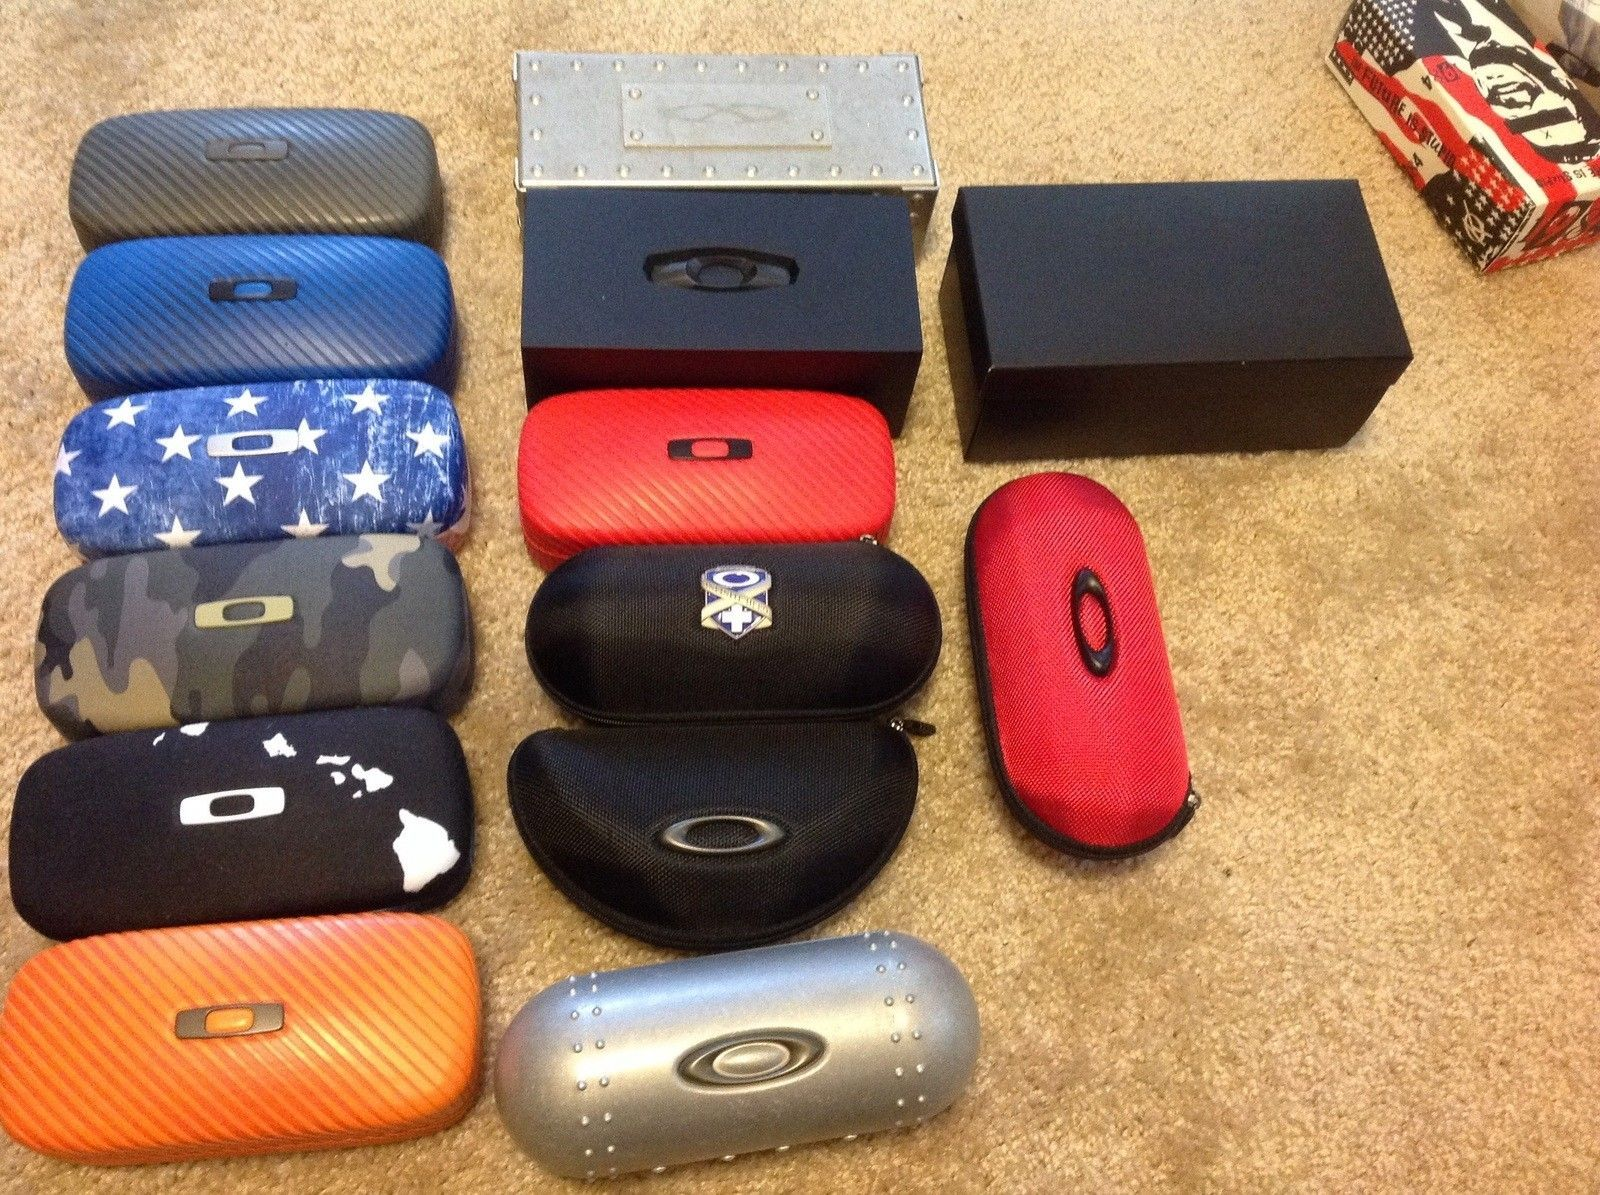 13 different cases new cond, $150 shipped - image.jpg